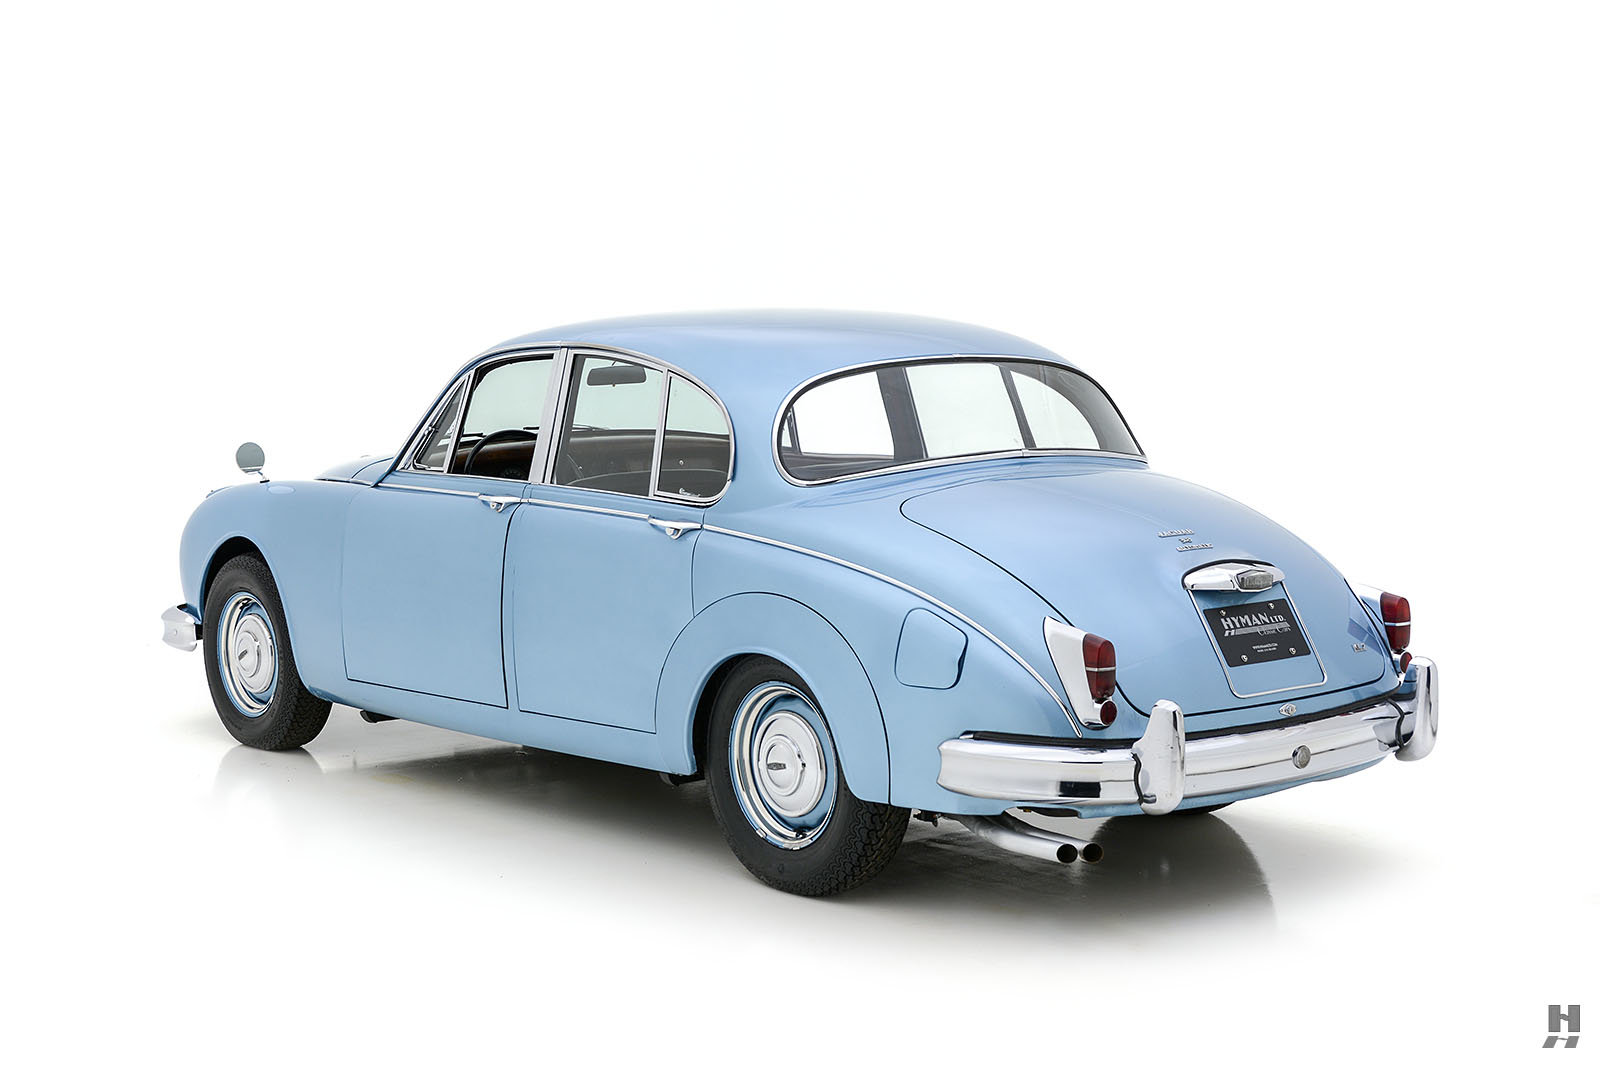 1963 JAGUAR MK II 3.8 SALOON For Sale (picture 6 of 6)